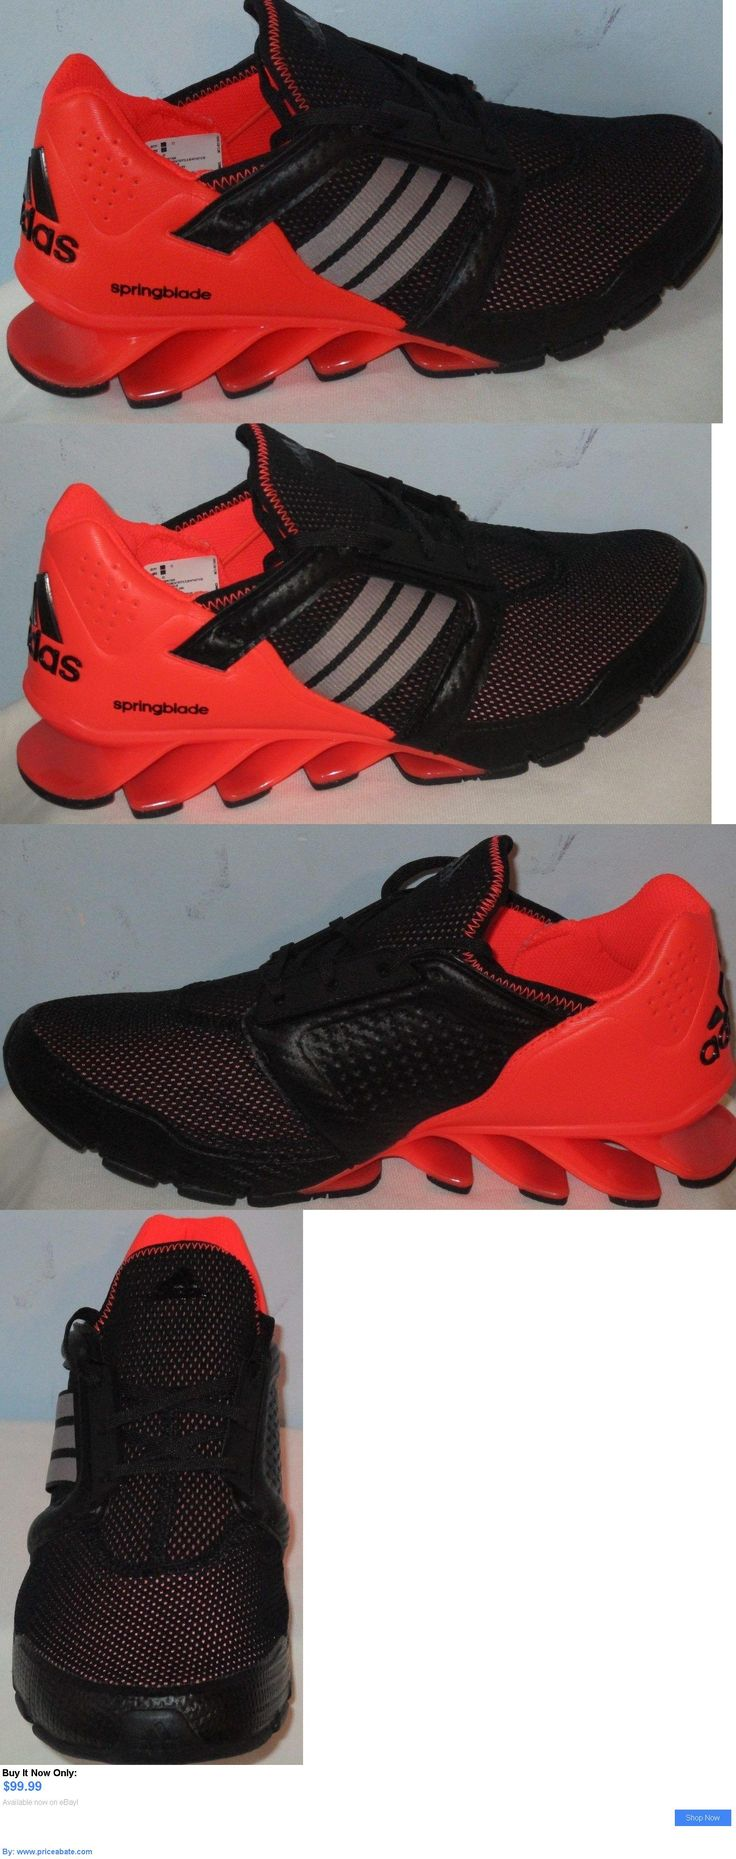 Men Shoes: Adidas Springblade E-Force Athletic Sneakers Running Black Men Shoes Size 9 BUY IT NOW ONLY: $99.99 #priceabateMenShoes OR #priceabate